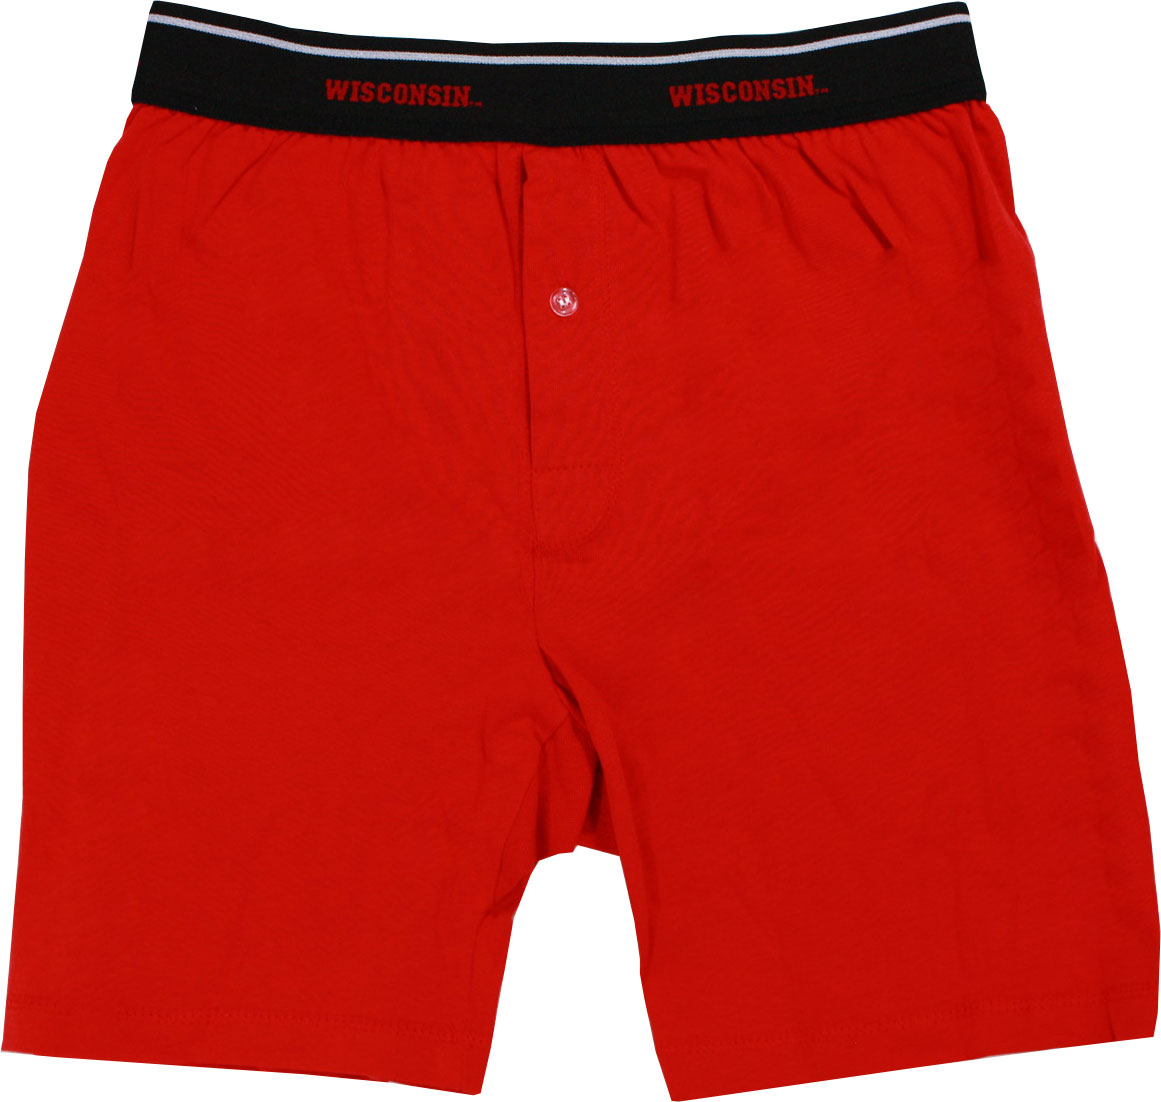 Wisconsin Badgers Men's Red Boxer Briefs by Colony